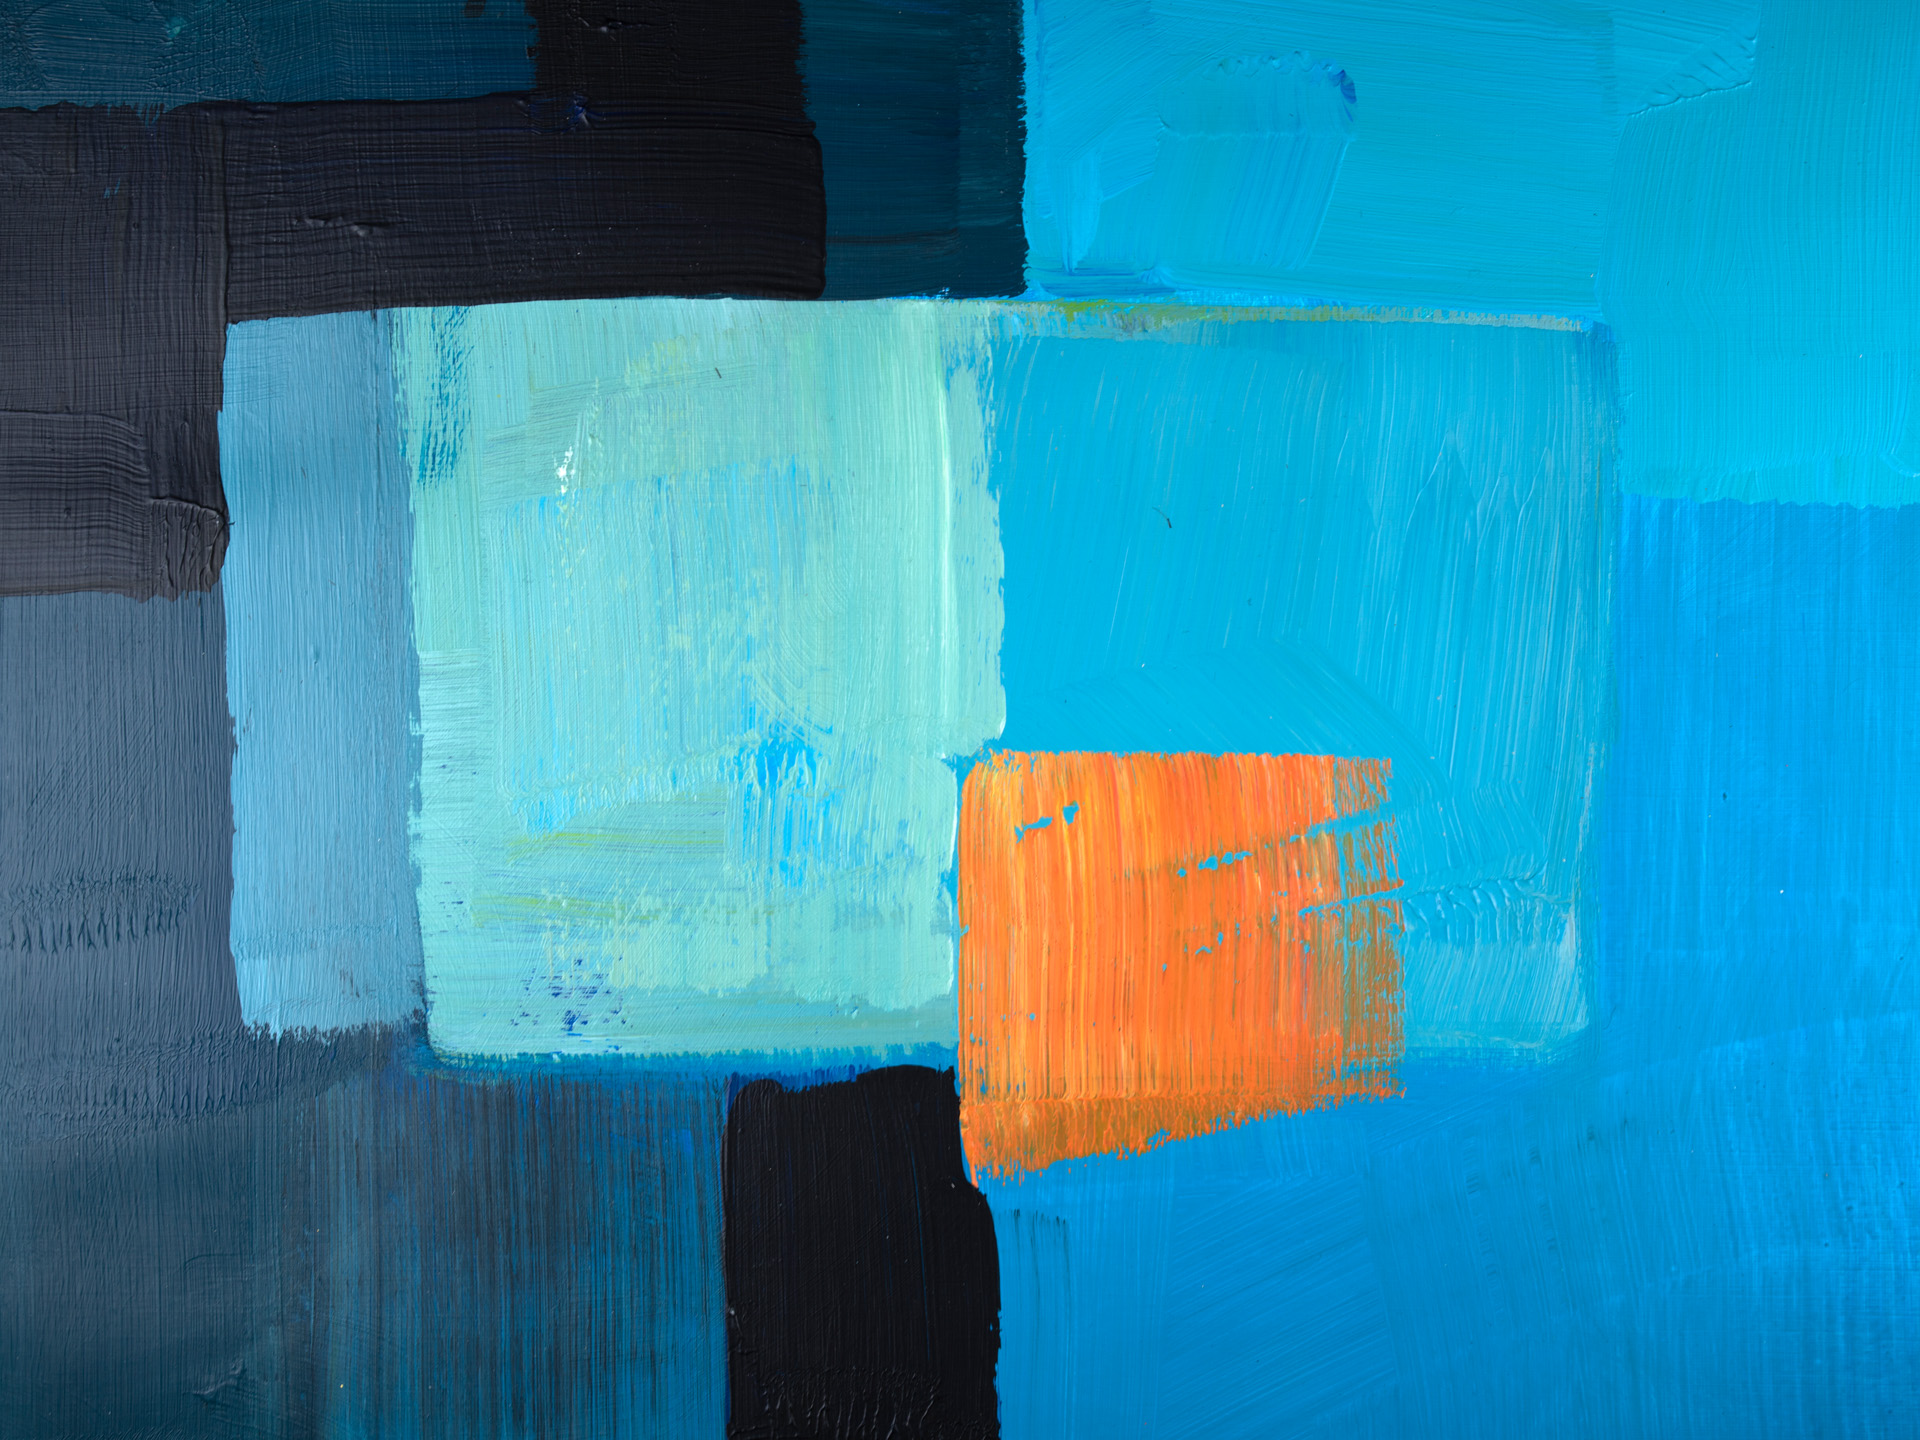 Blue Gray and Orange 1119 2845, 30x40, © Ernest Bisaev